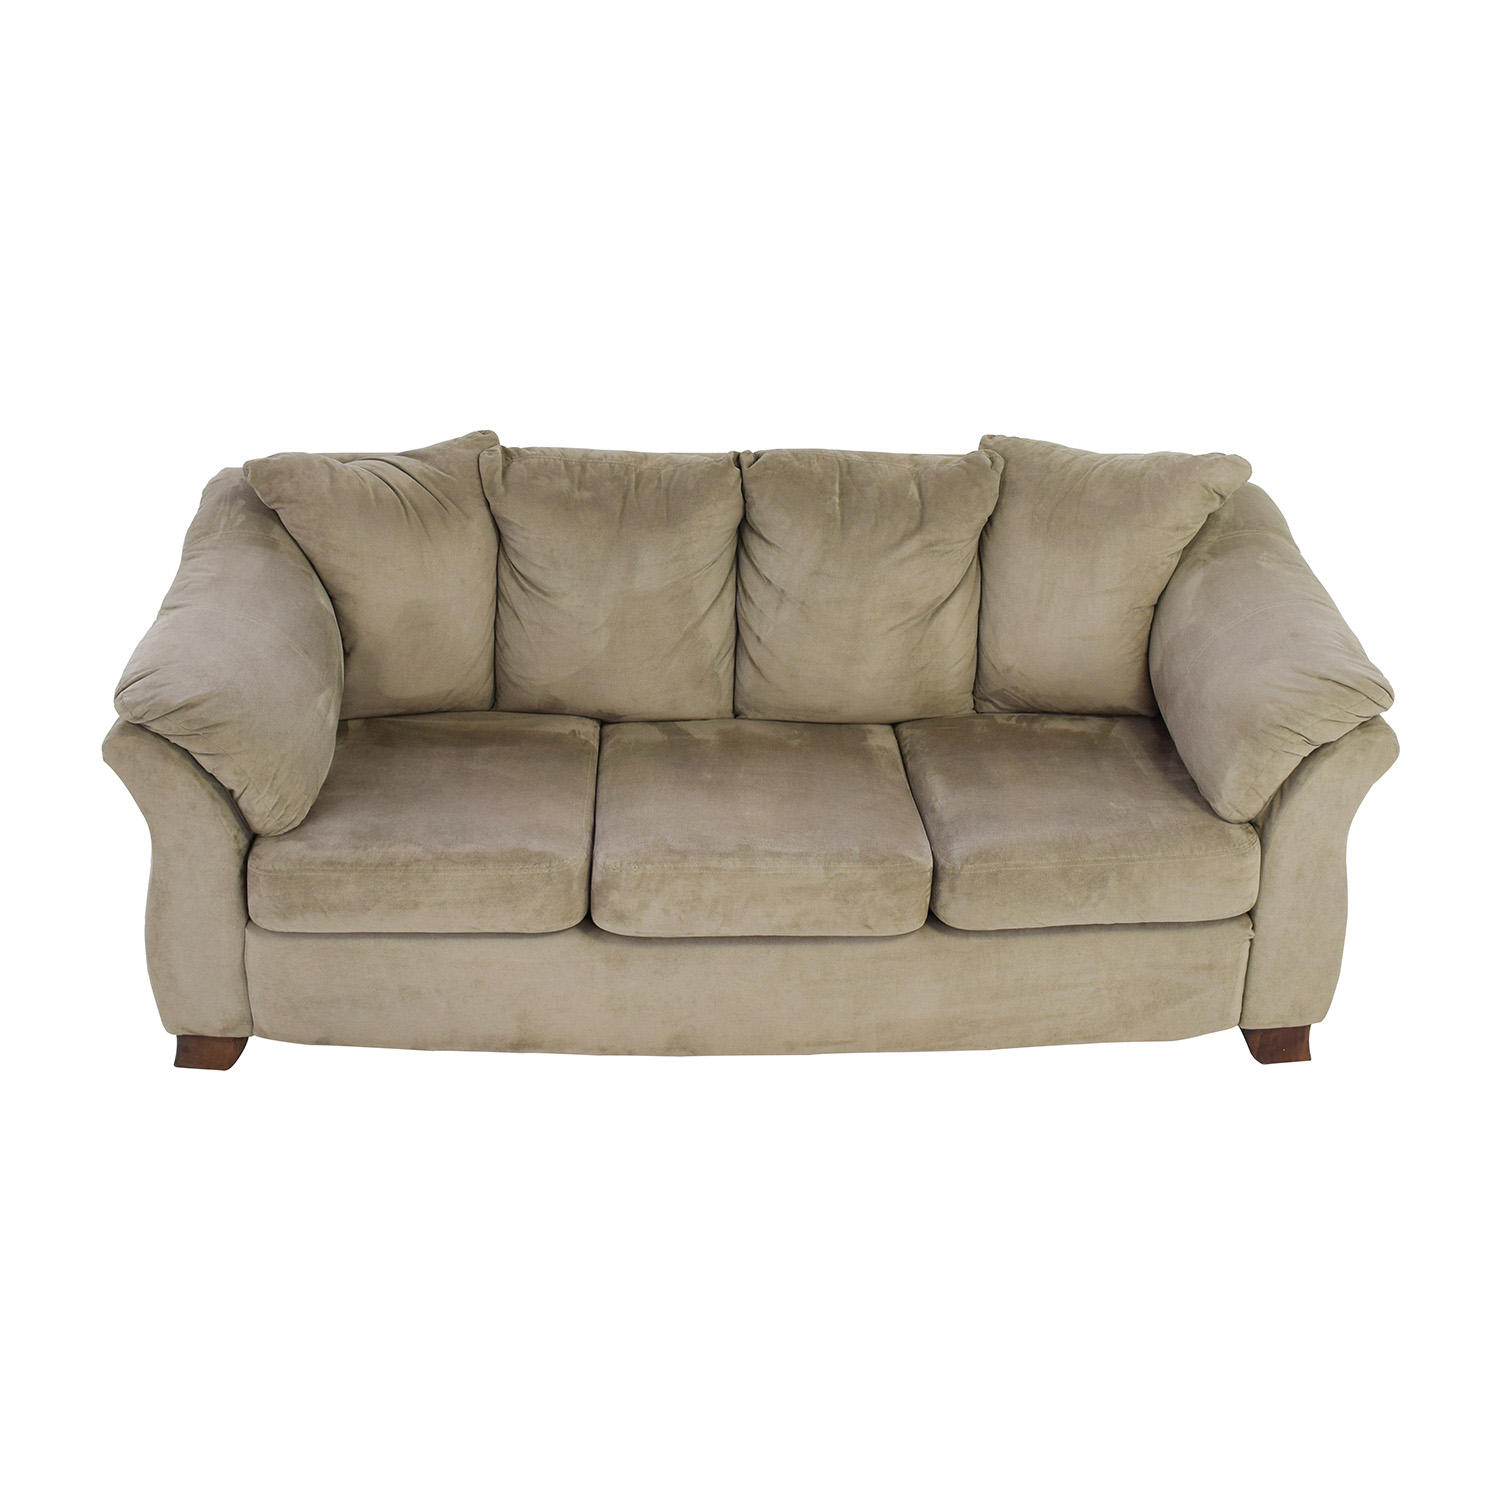 Unknown Brand Sage Green Sofa discount